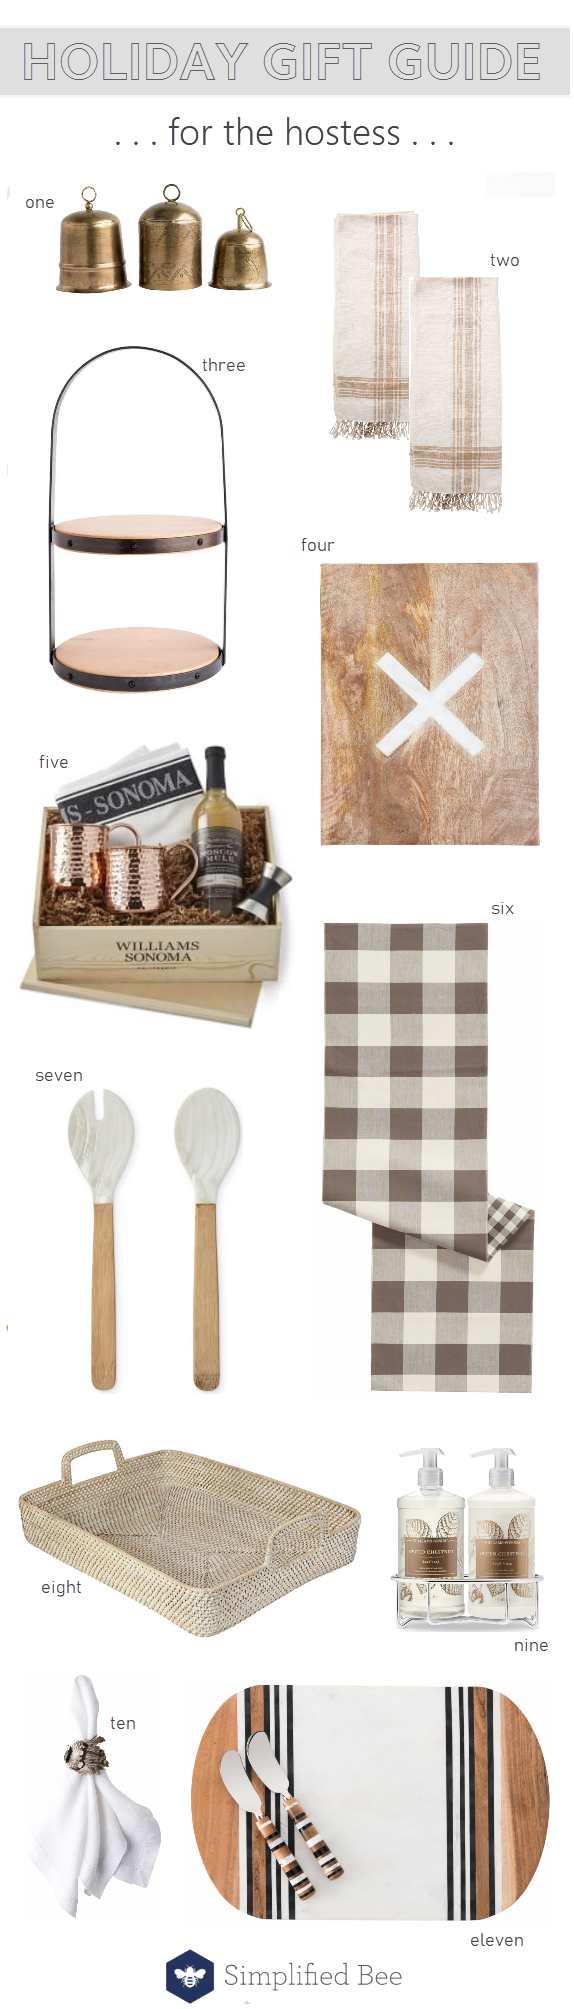 hostess gifts :: gift guide 2018